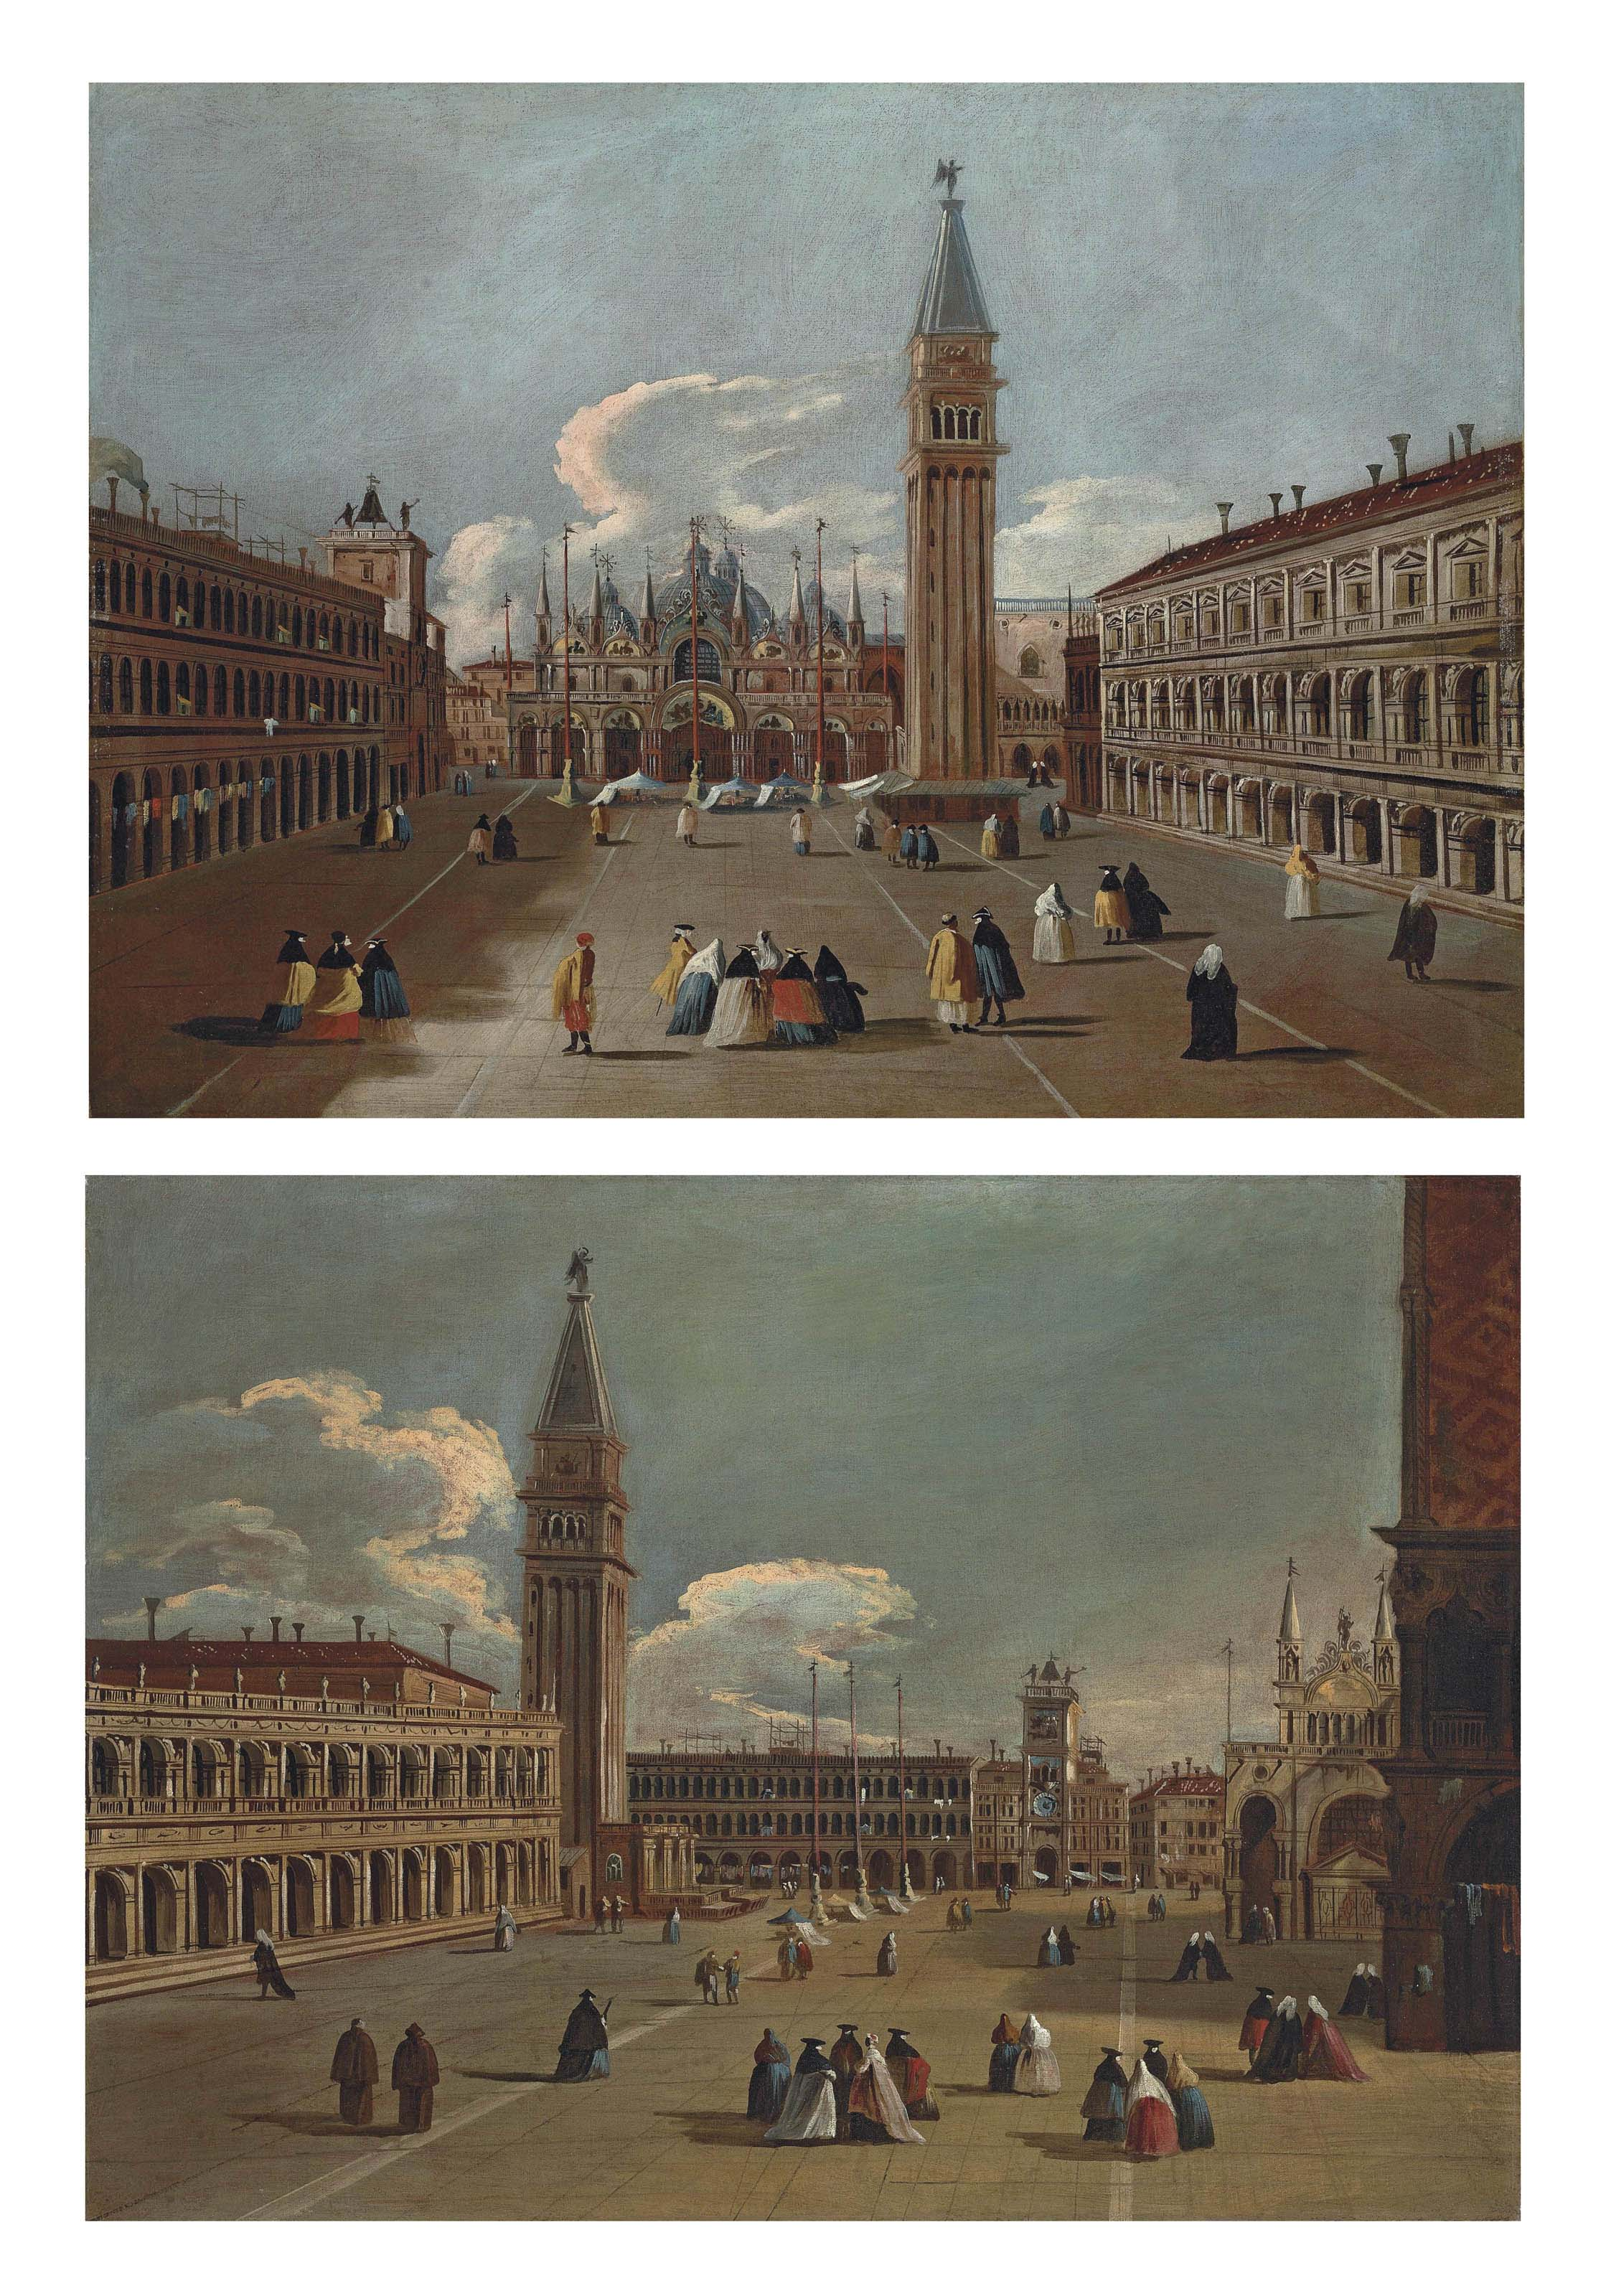 A view of Saint Mark's Square, Venice, looking east towards the Basilica and the Campanile; and A view of the Piazzetta, Venice, looking north towards the Torre dell'Orologio